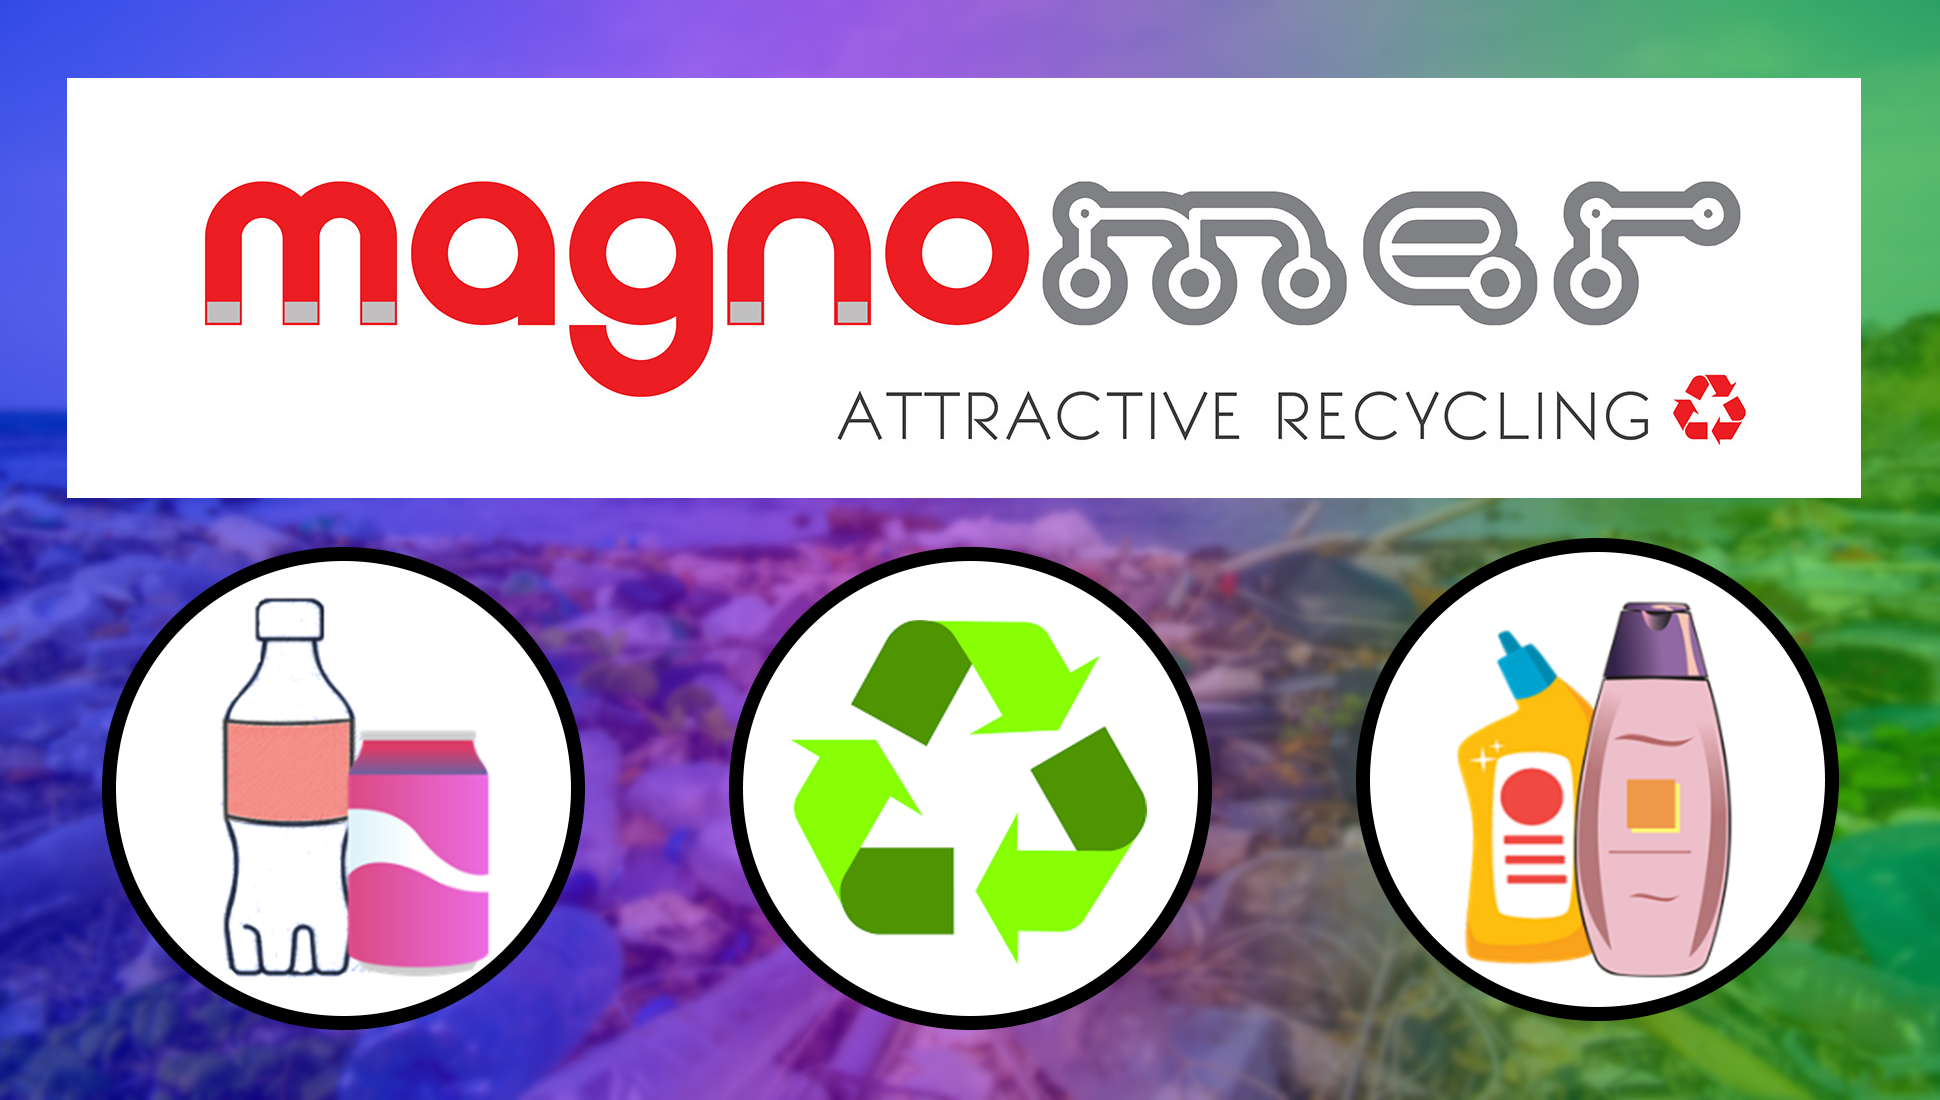 Magnomer: Helping To Re-imagine Recycling in the U.S. and Abroad